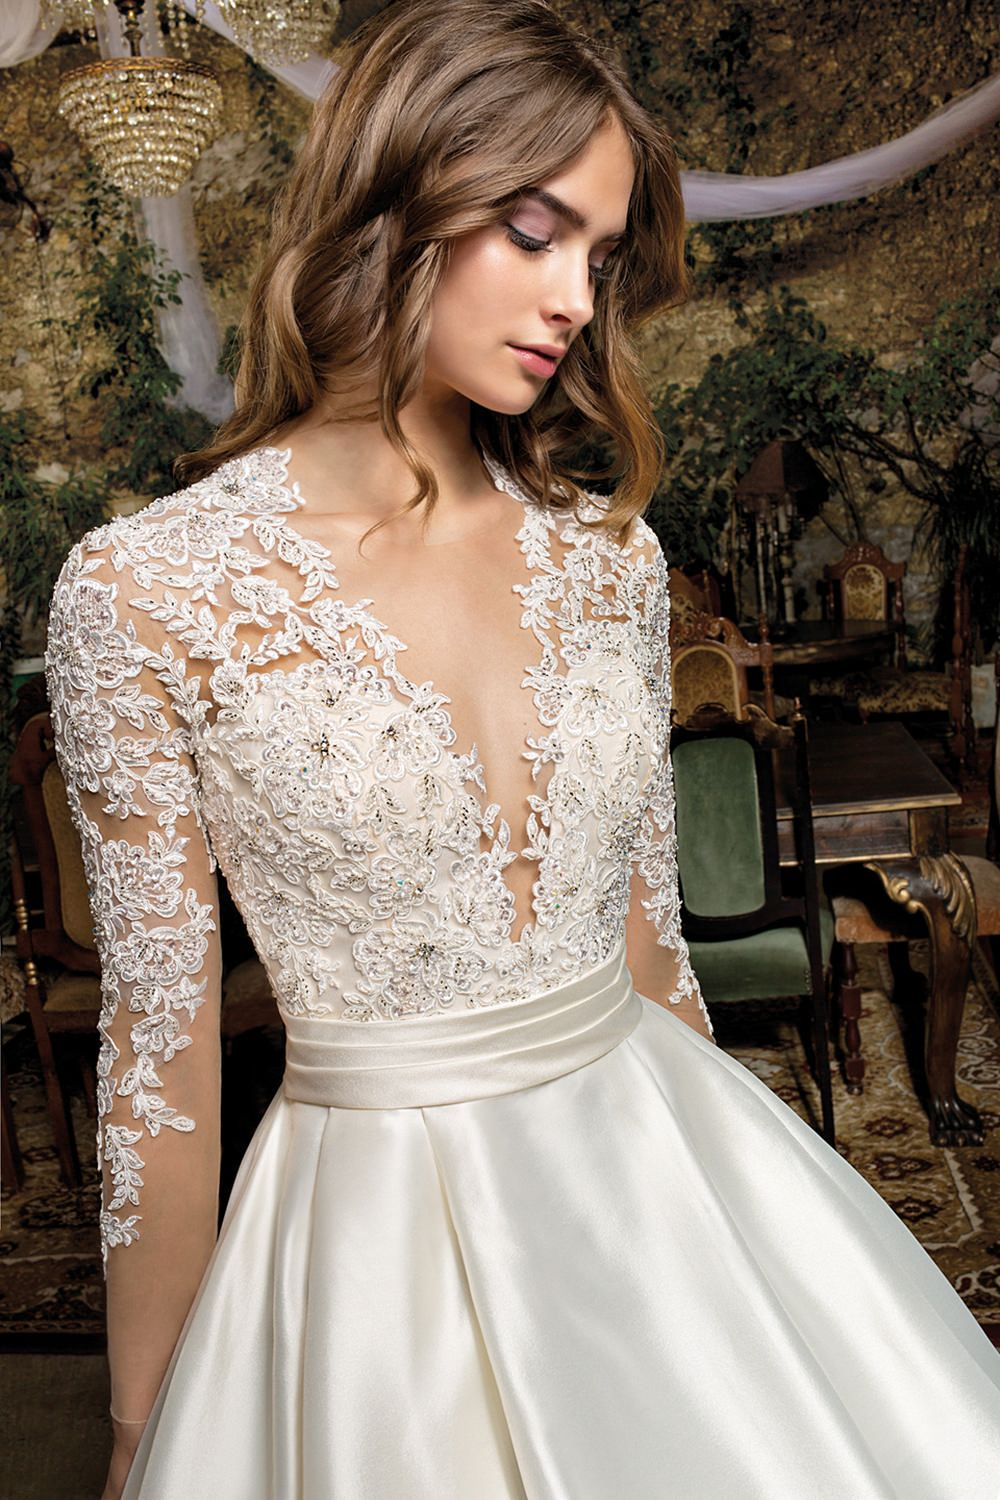 Bridal Collections Indianapolis In Bridal Store Wedding Dresses Marie Gabriel Couture Wedding Dress Styles Bridal Dresses Wedding Dresses